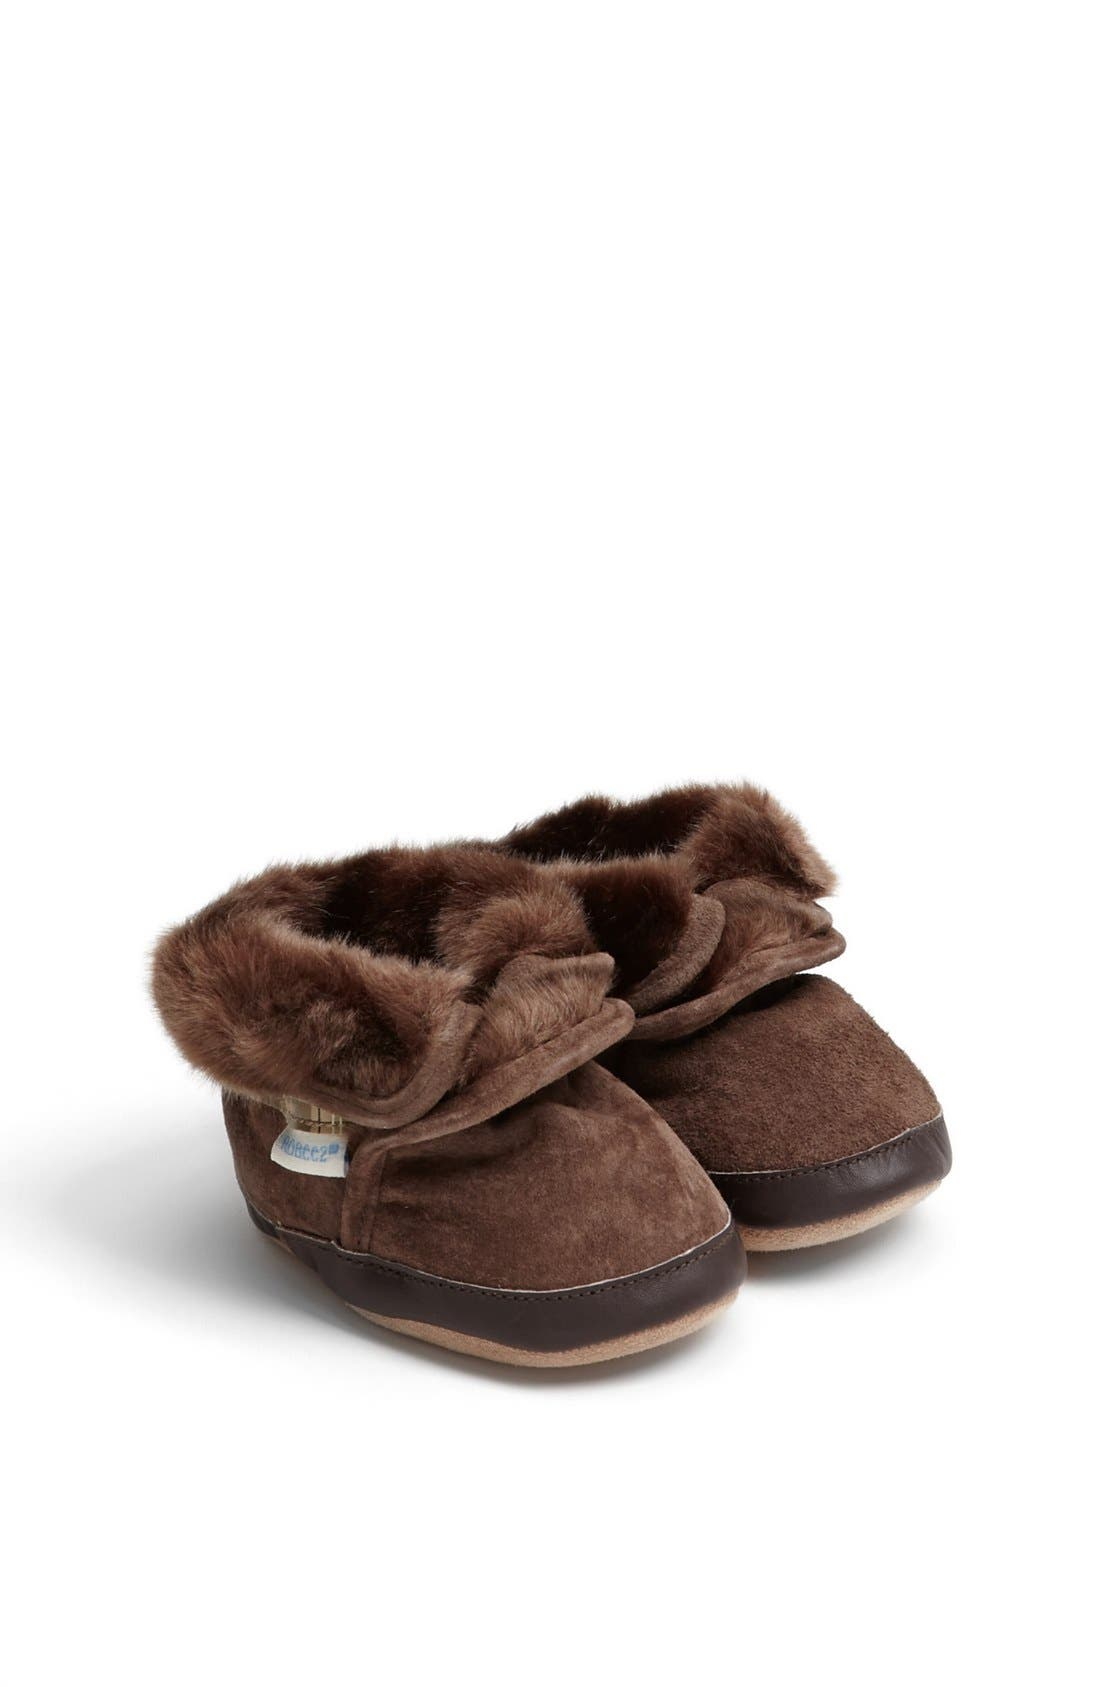 'Cozy' Ankle Bootie,                             Main thumbnail 1, color,                             Brown